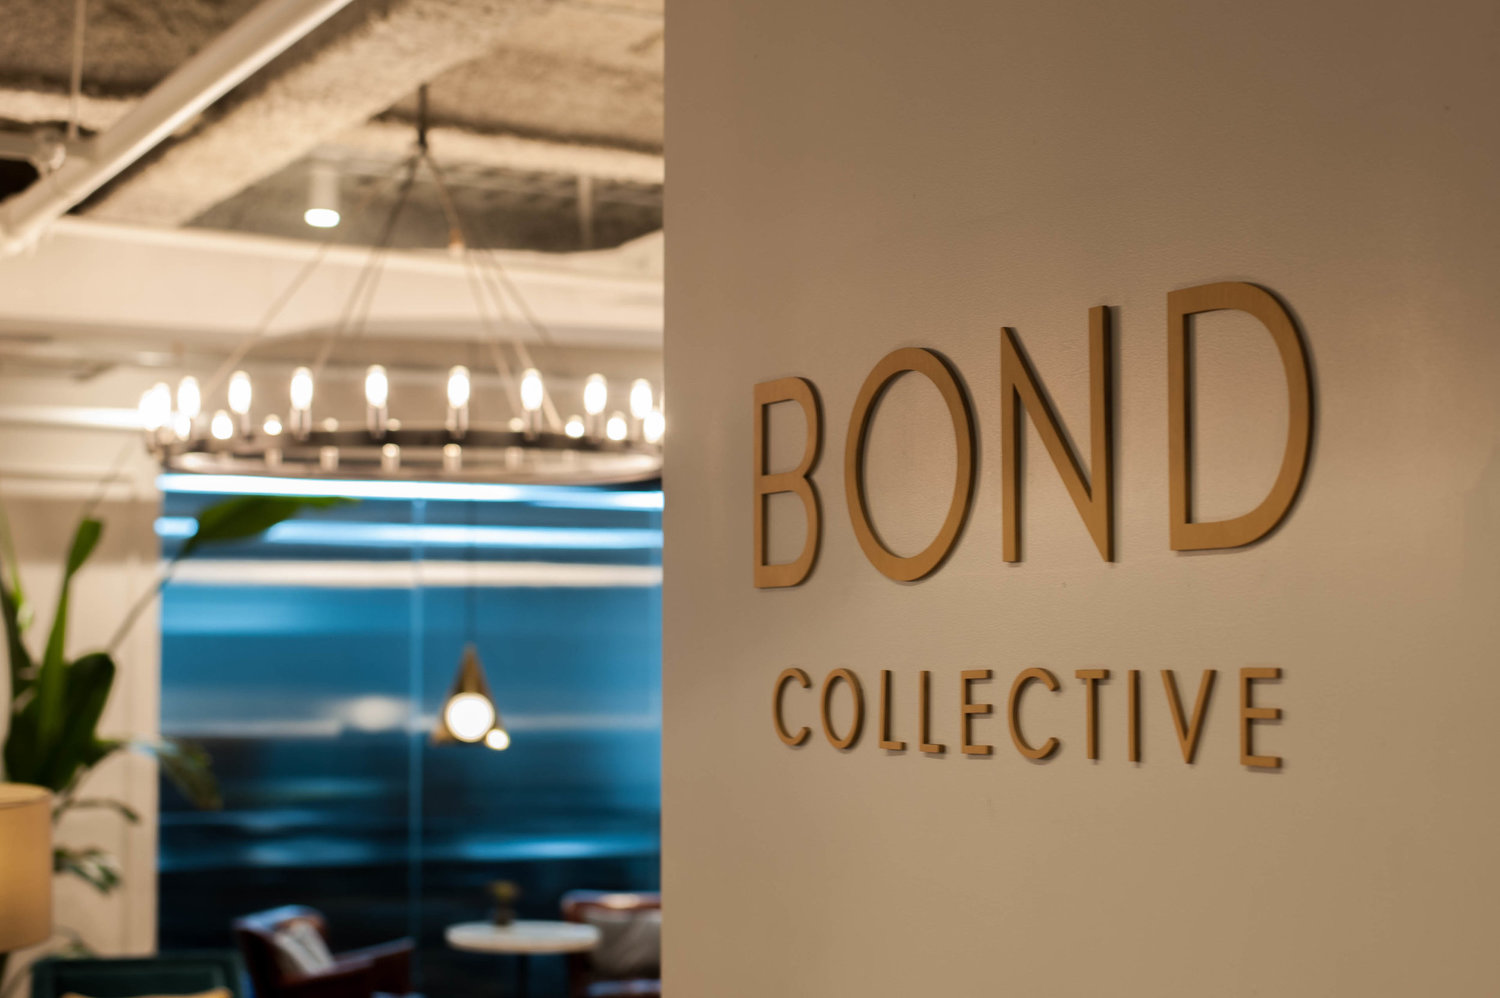 Bond Collective logo on wall